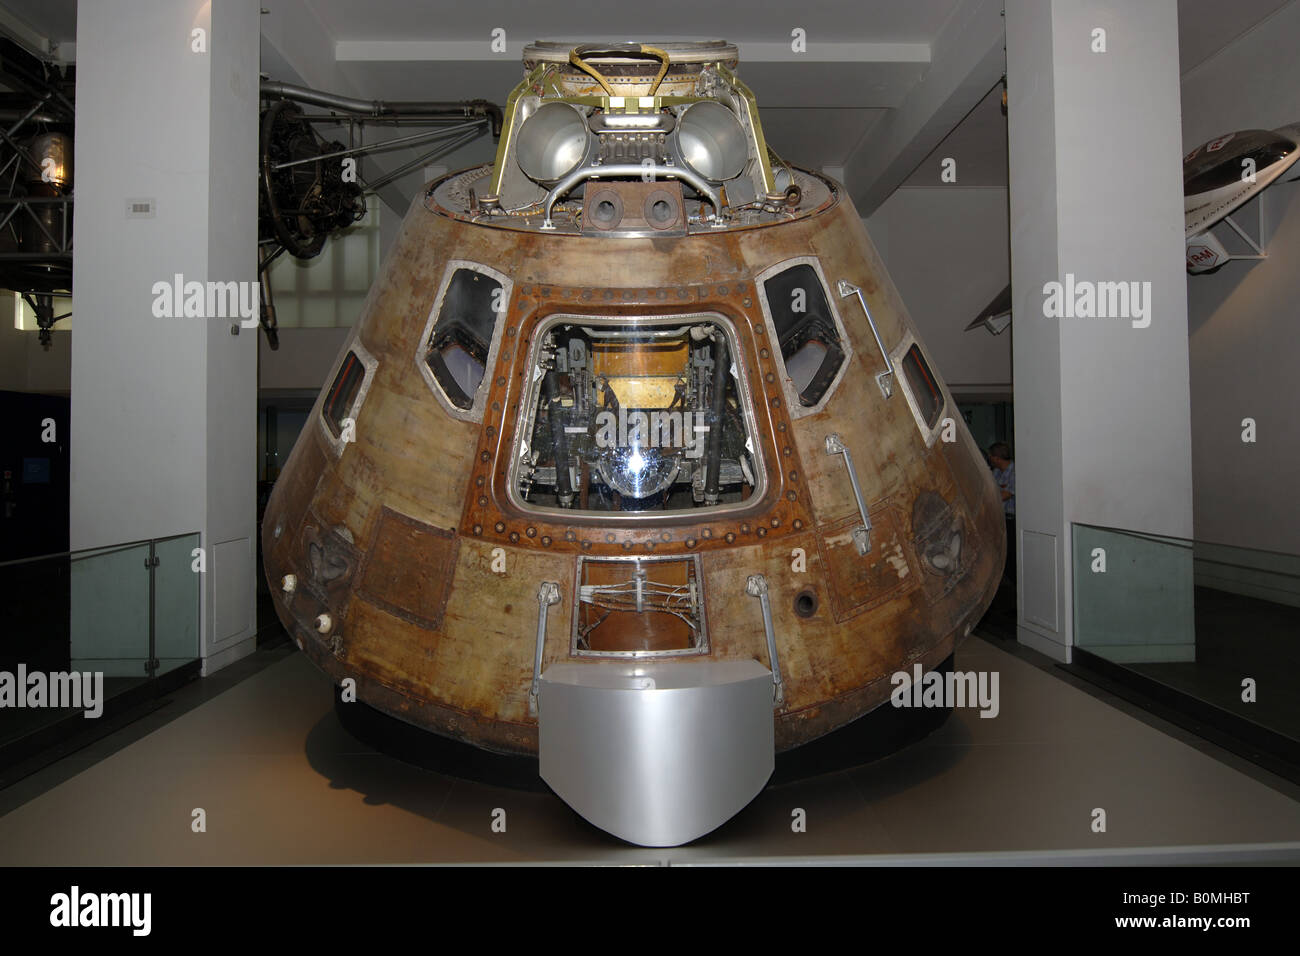 apollo space capsule locations - photo #40